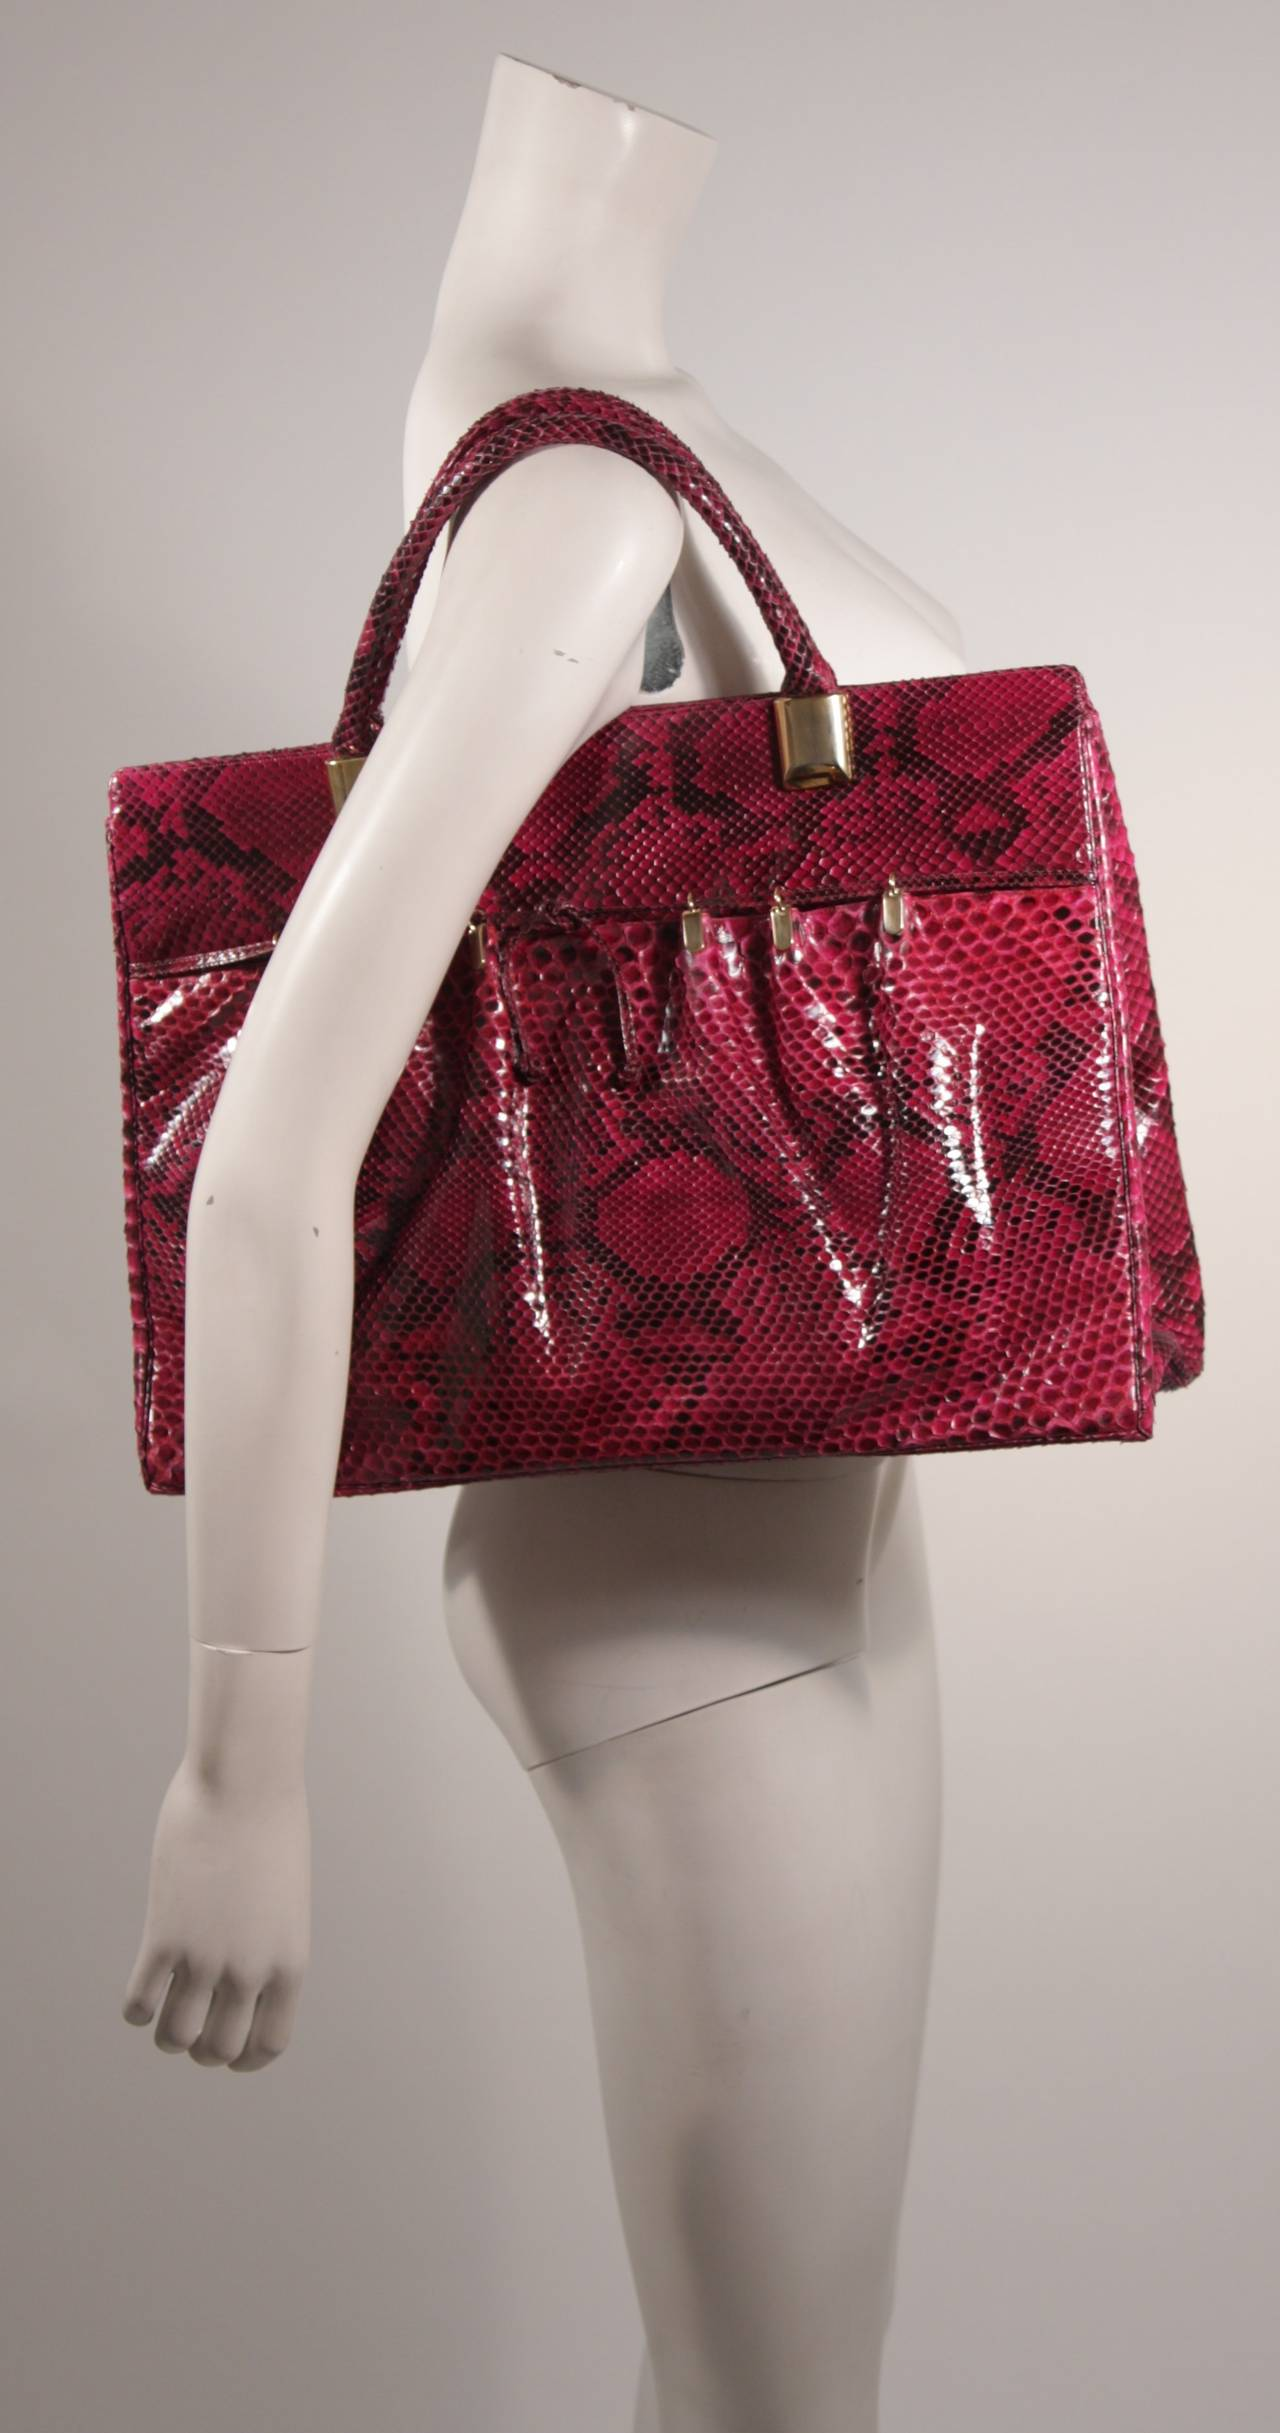 1980's Judith Leiber Extra Large Magenta Snakeskin Tote with Gold Hardware 4